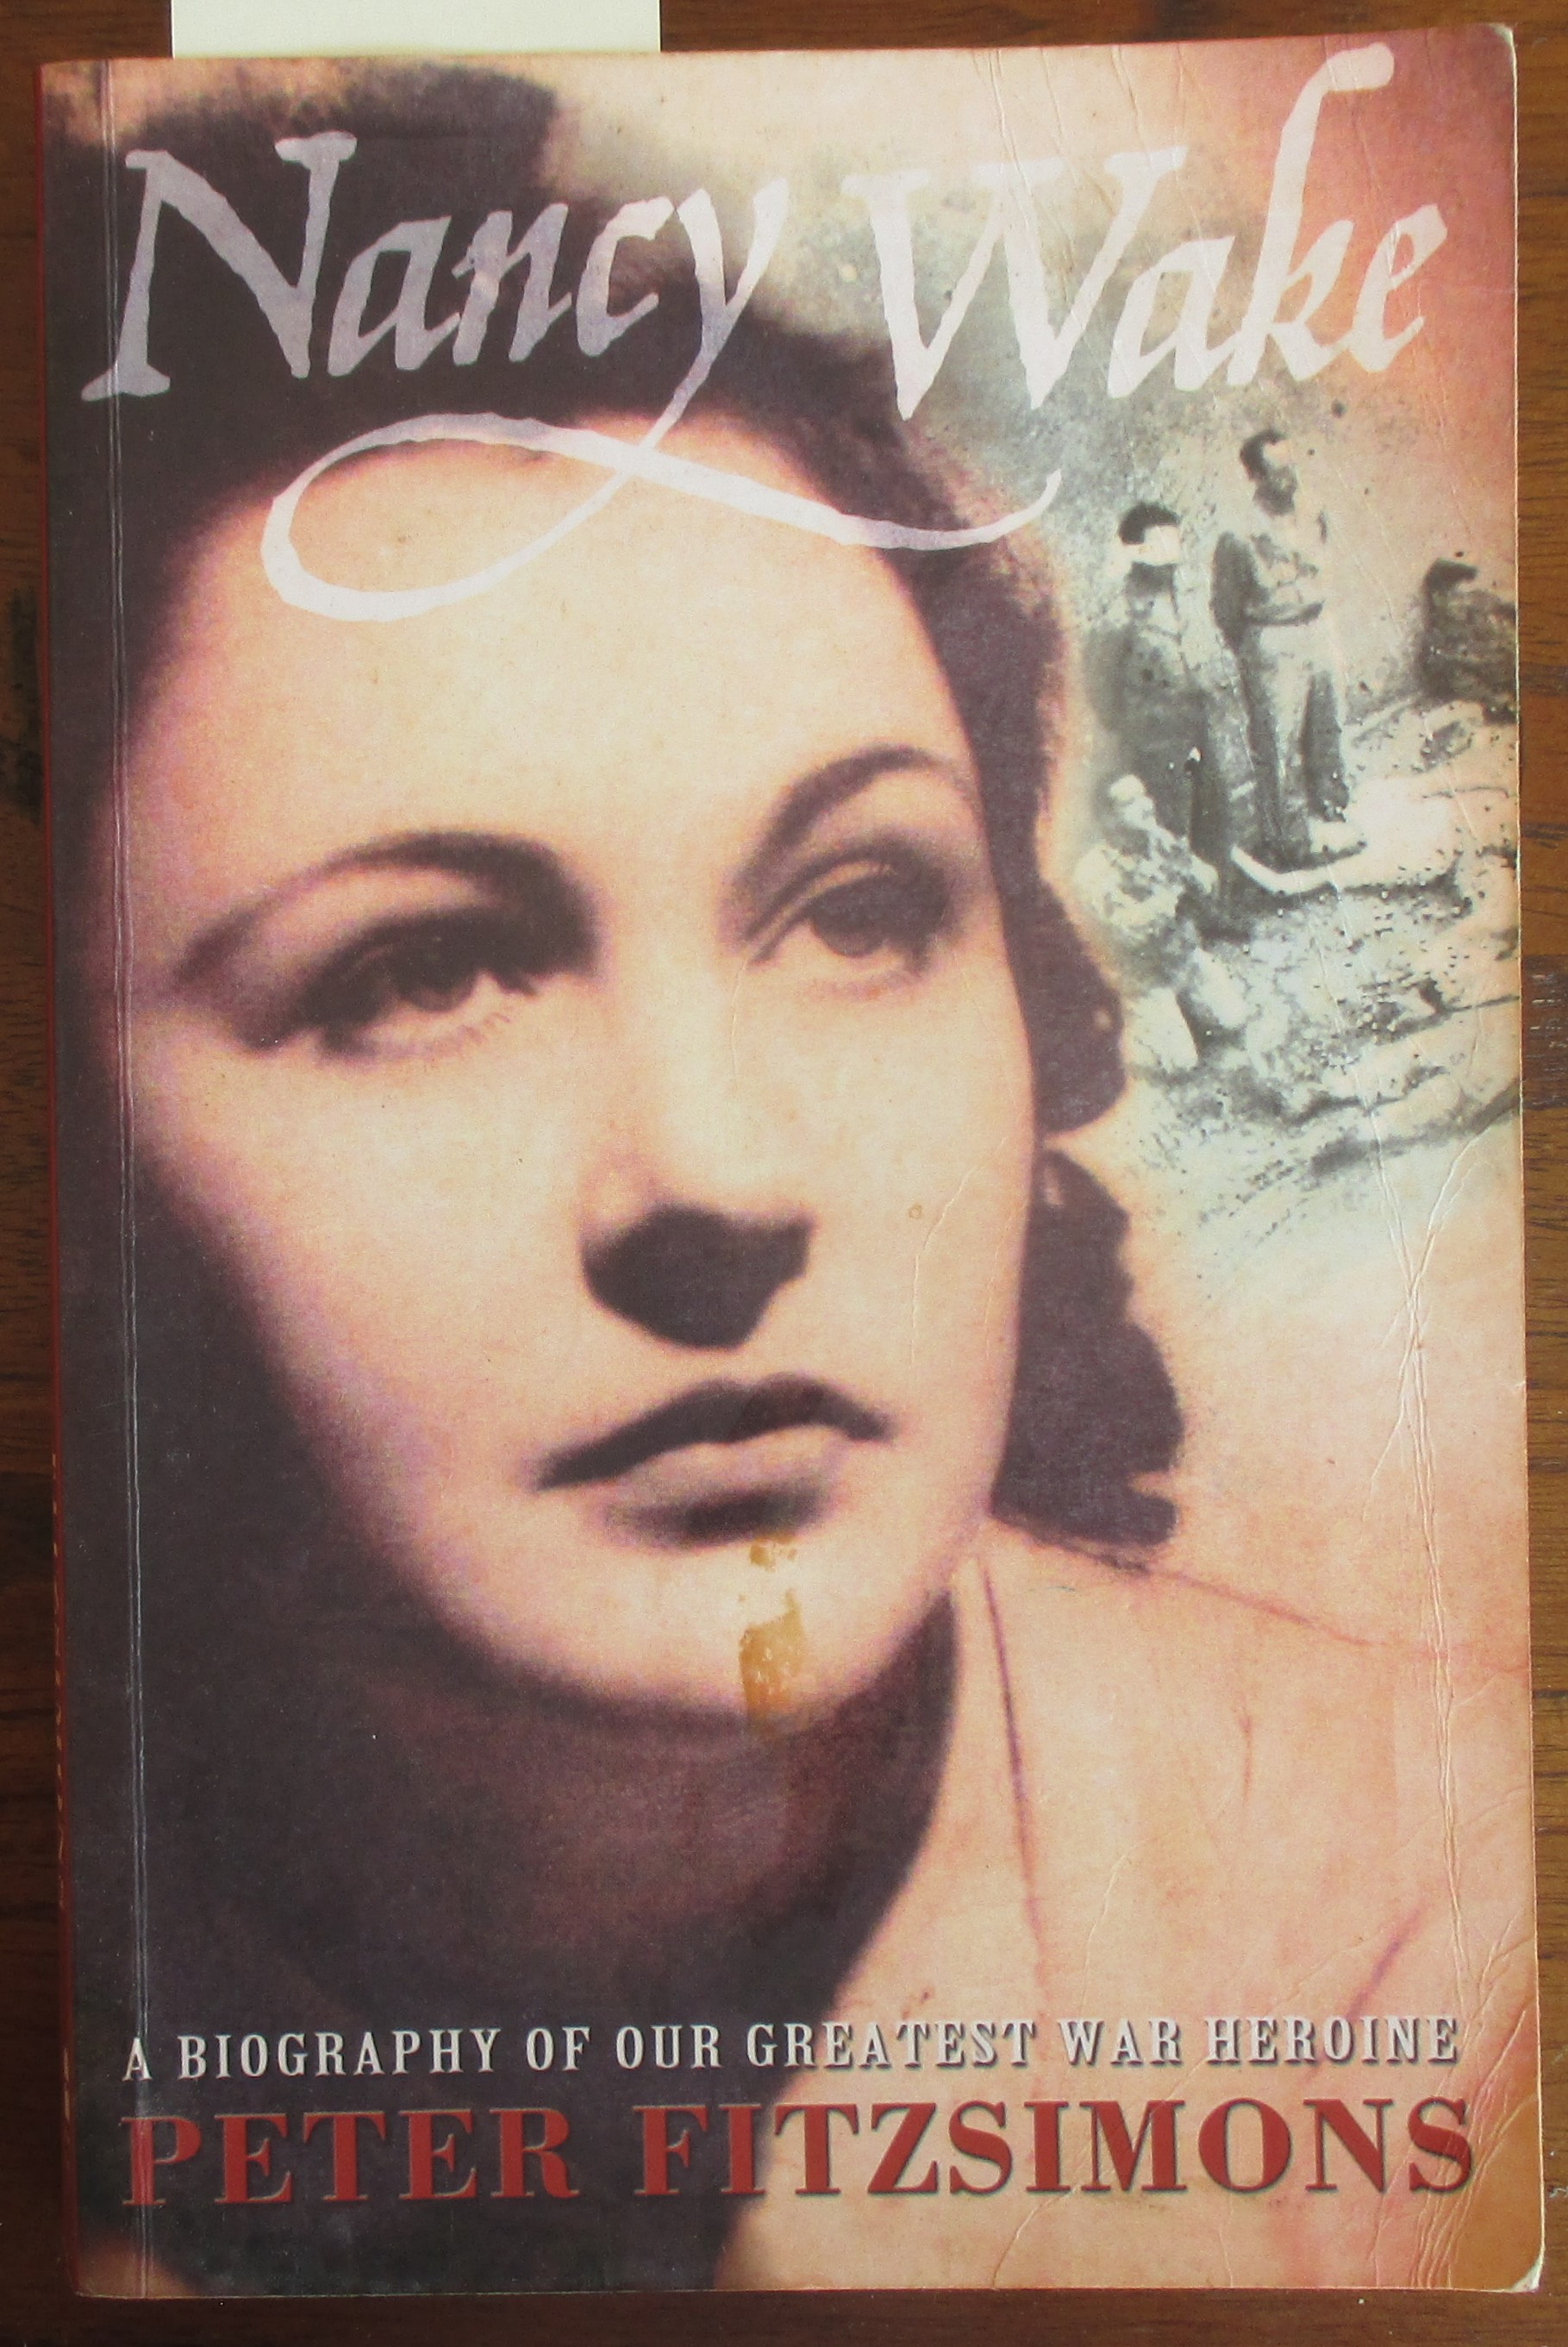 Image for Nancy Wake: A Biography of Our Greatest War Heroine